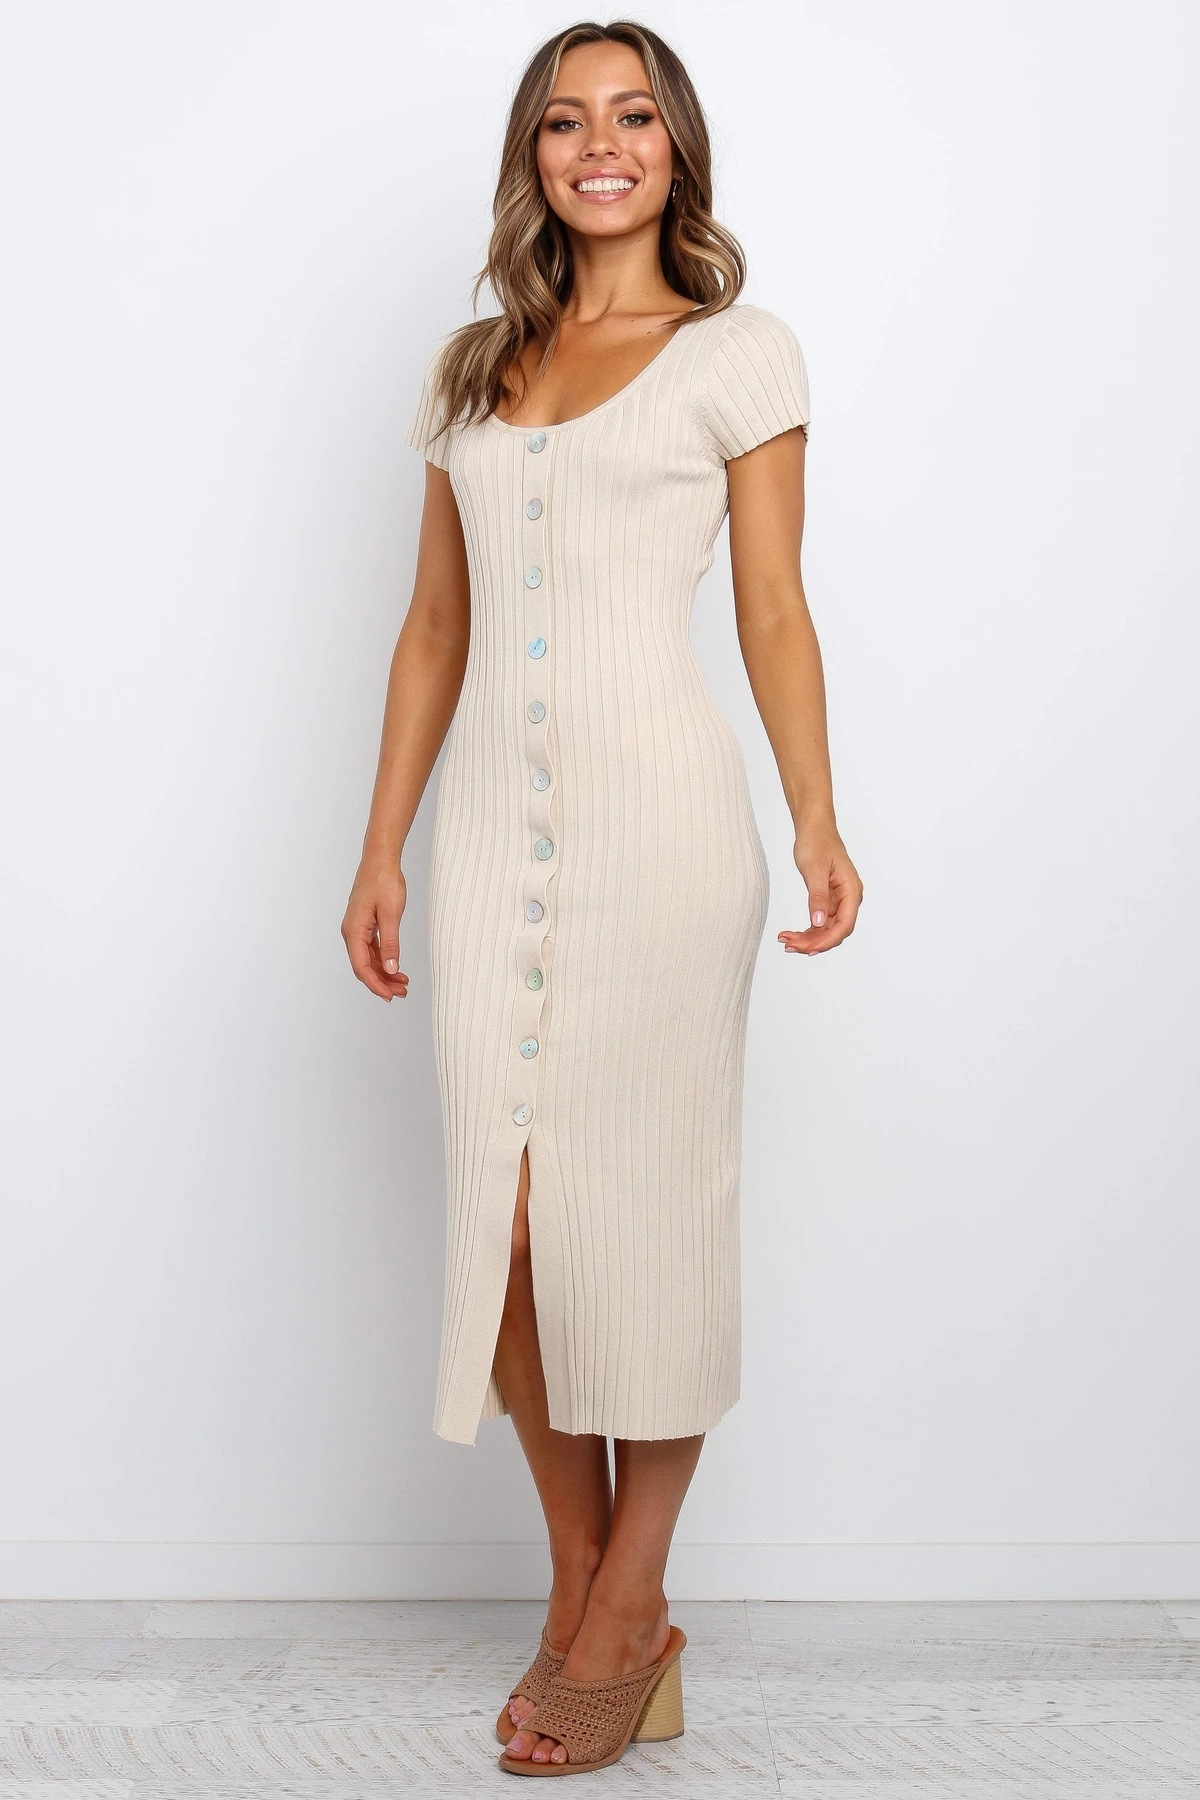 new round neck short sleeve button mid-length knitted temperament dress NSYD4104